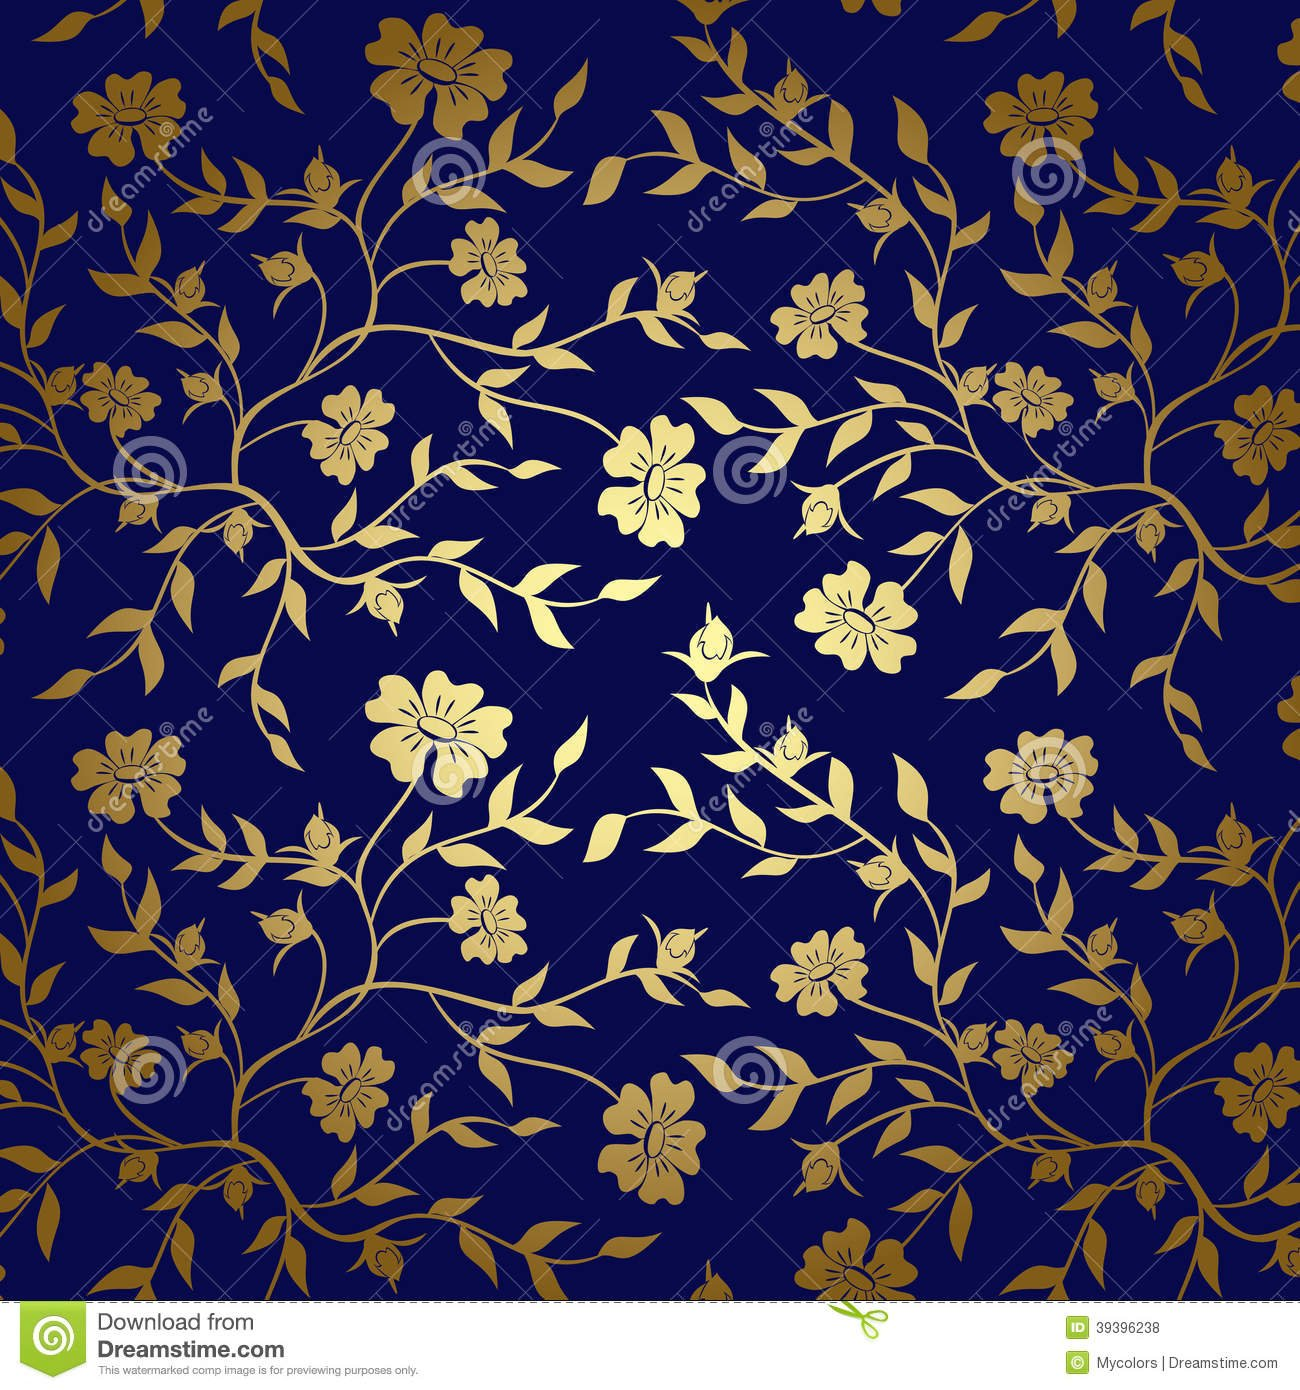 Free Download Navy Blue And Gold Background 1300x1390 For Your